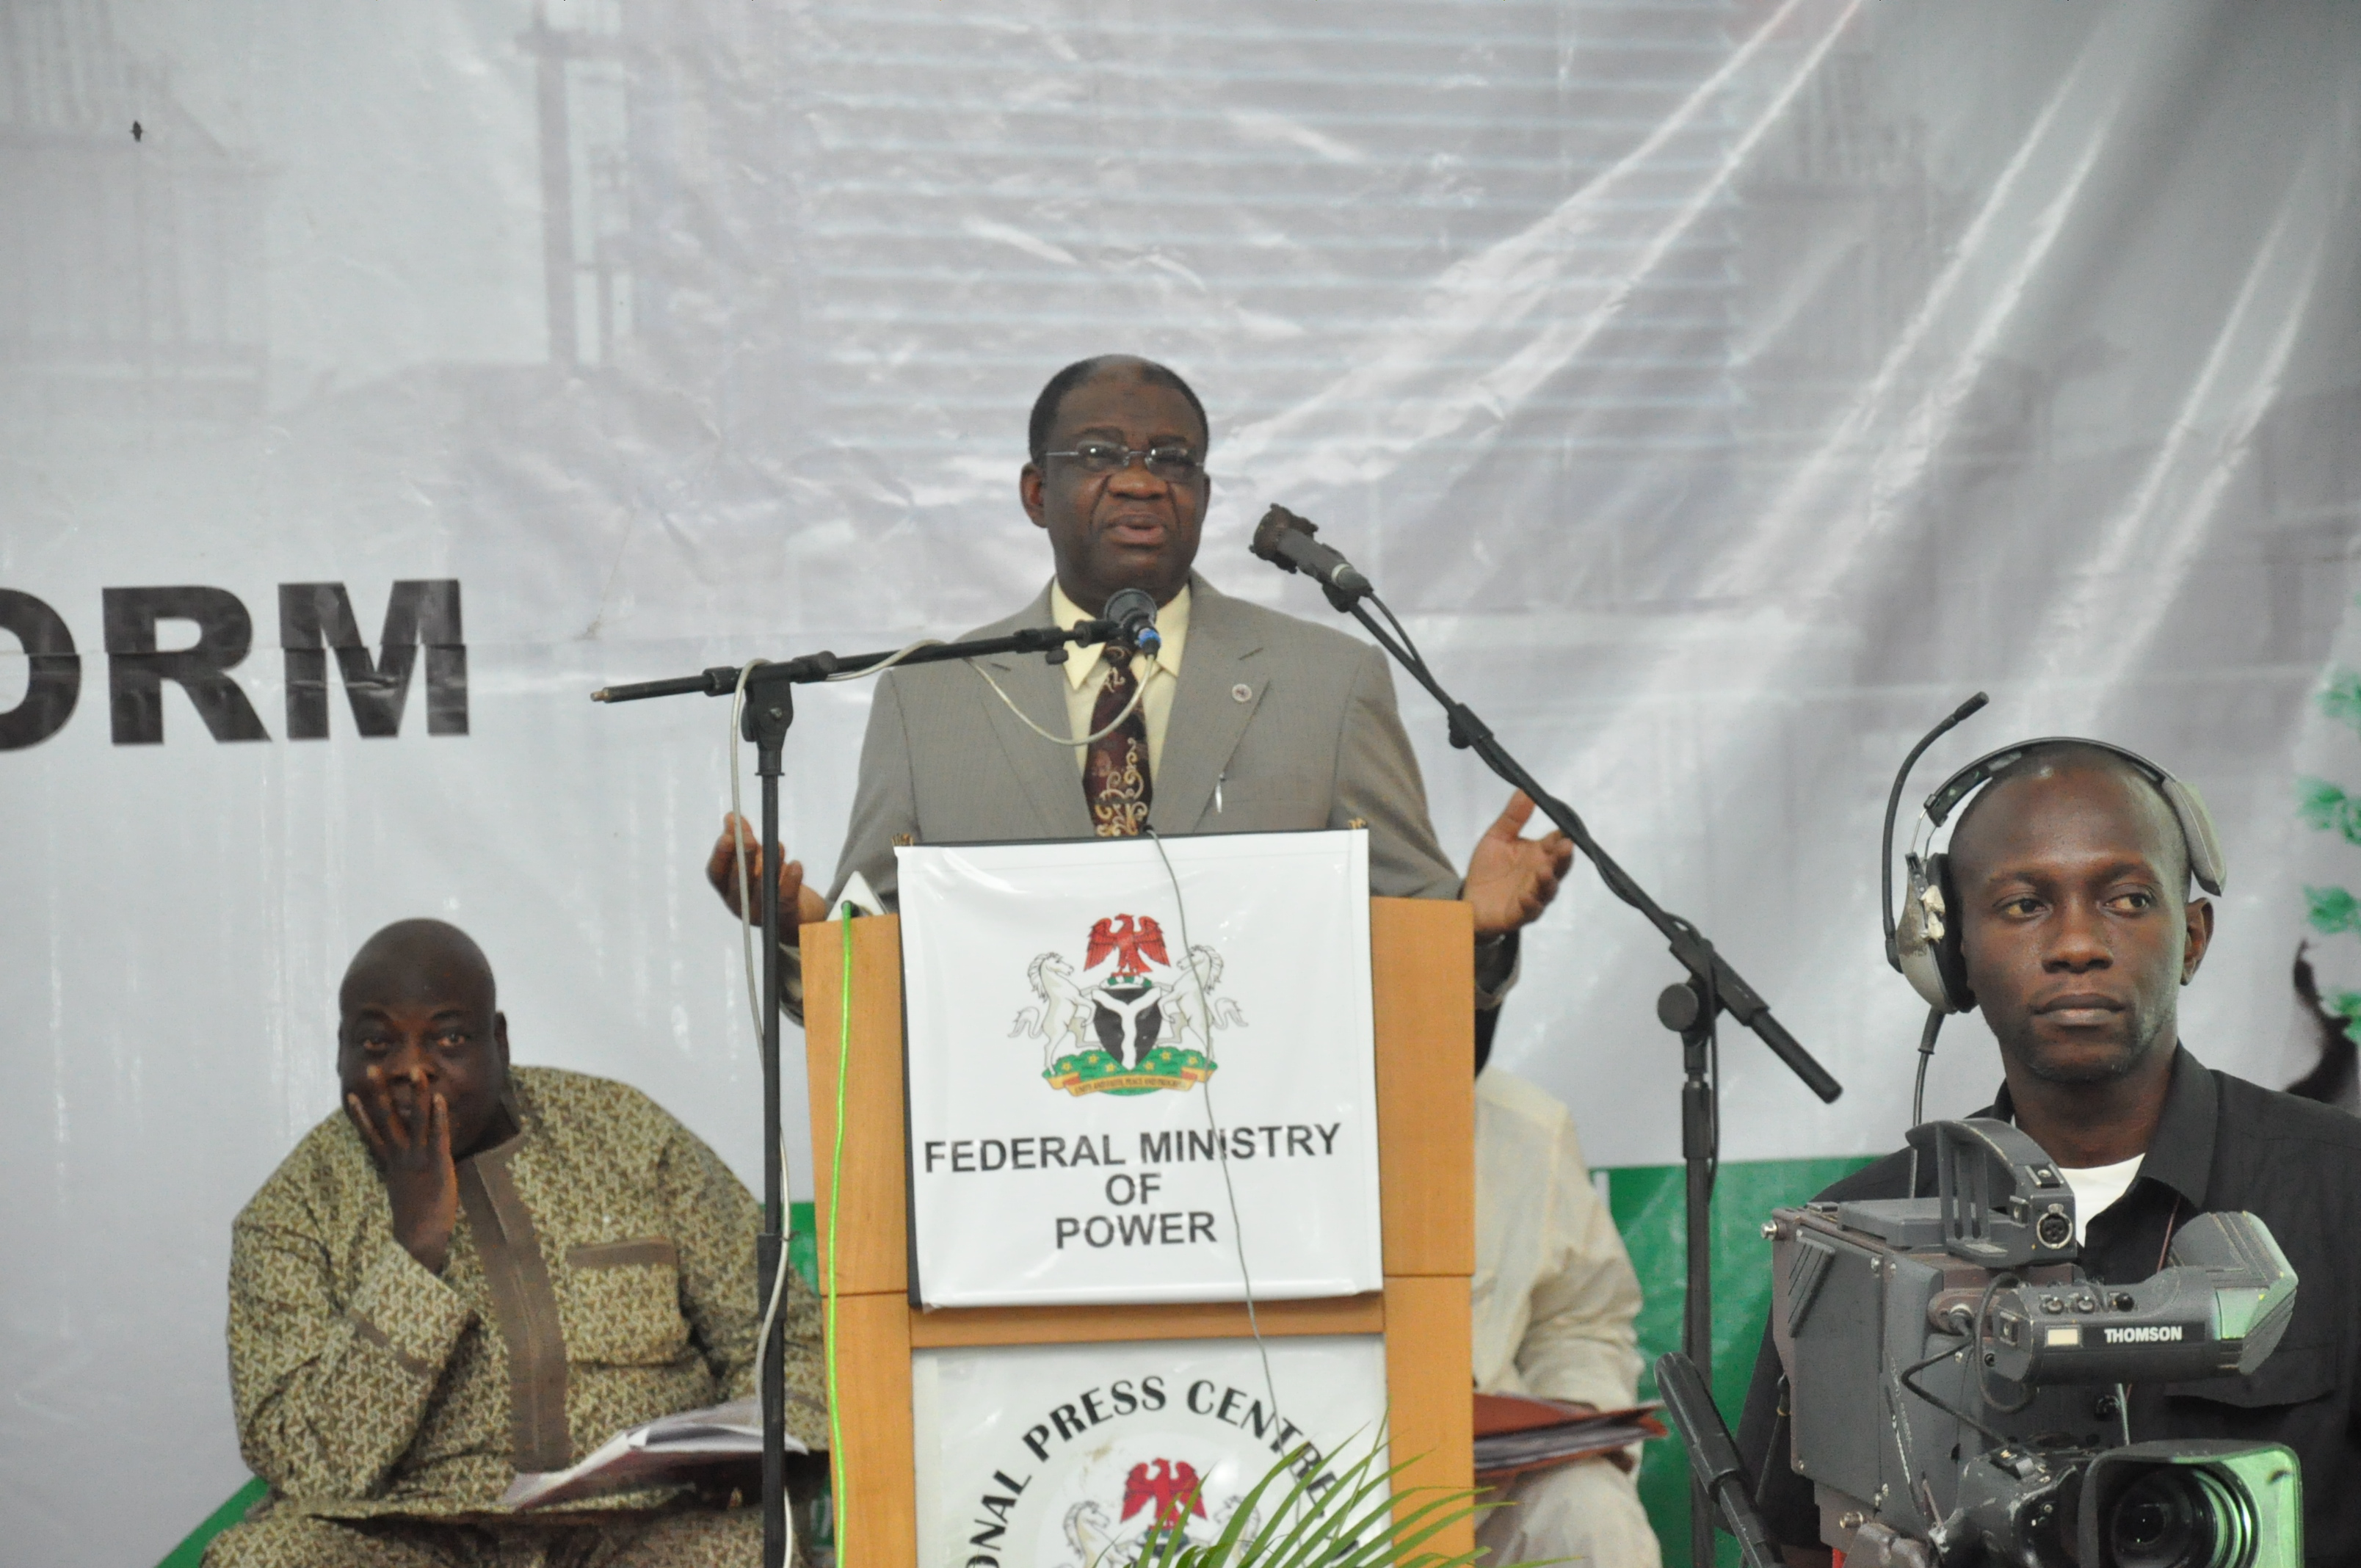 Minister of Power, Prof Chinedu Nebo During the Ministerial Platform